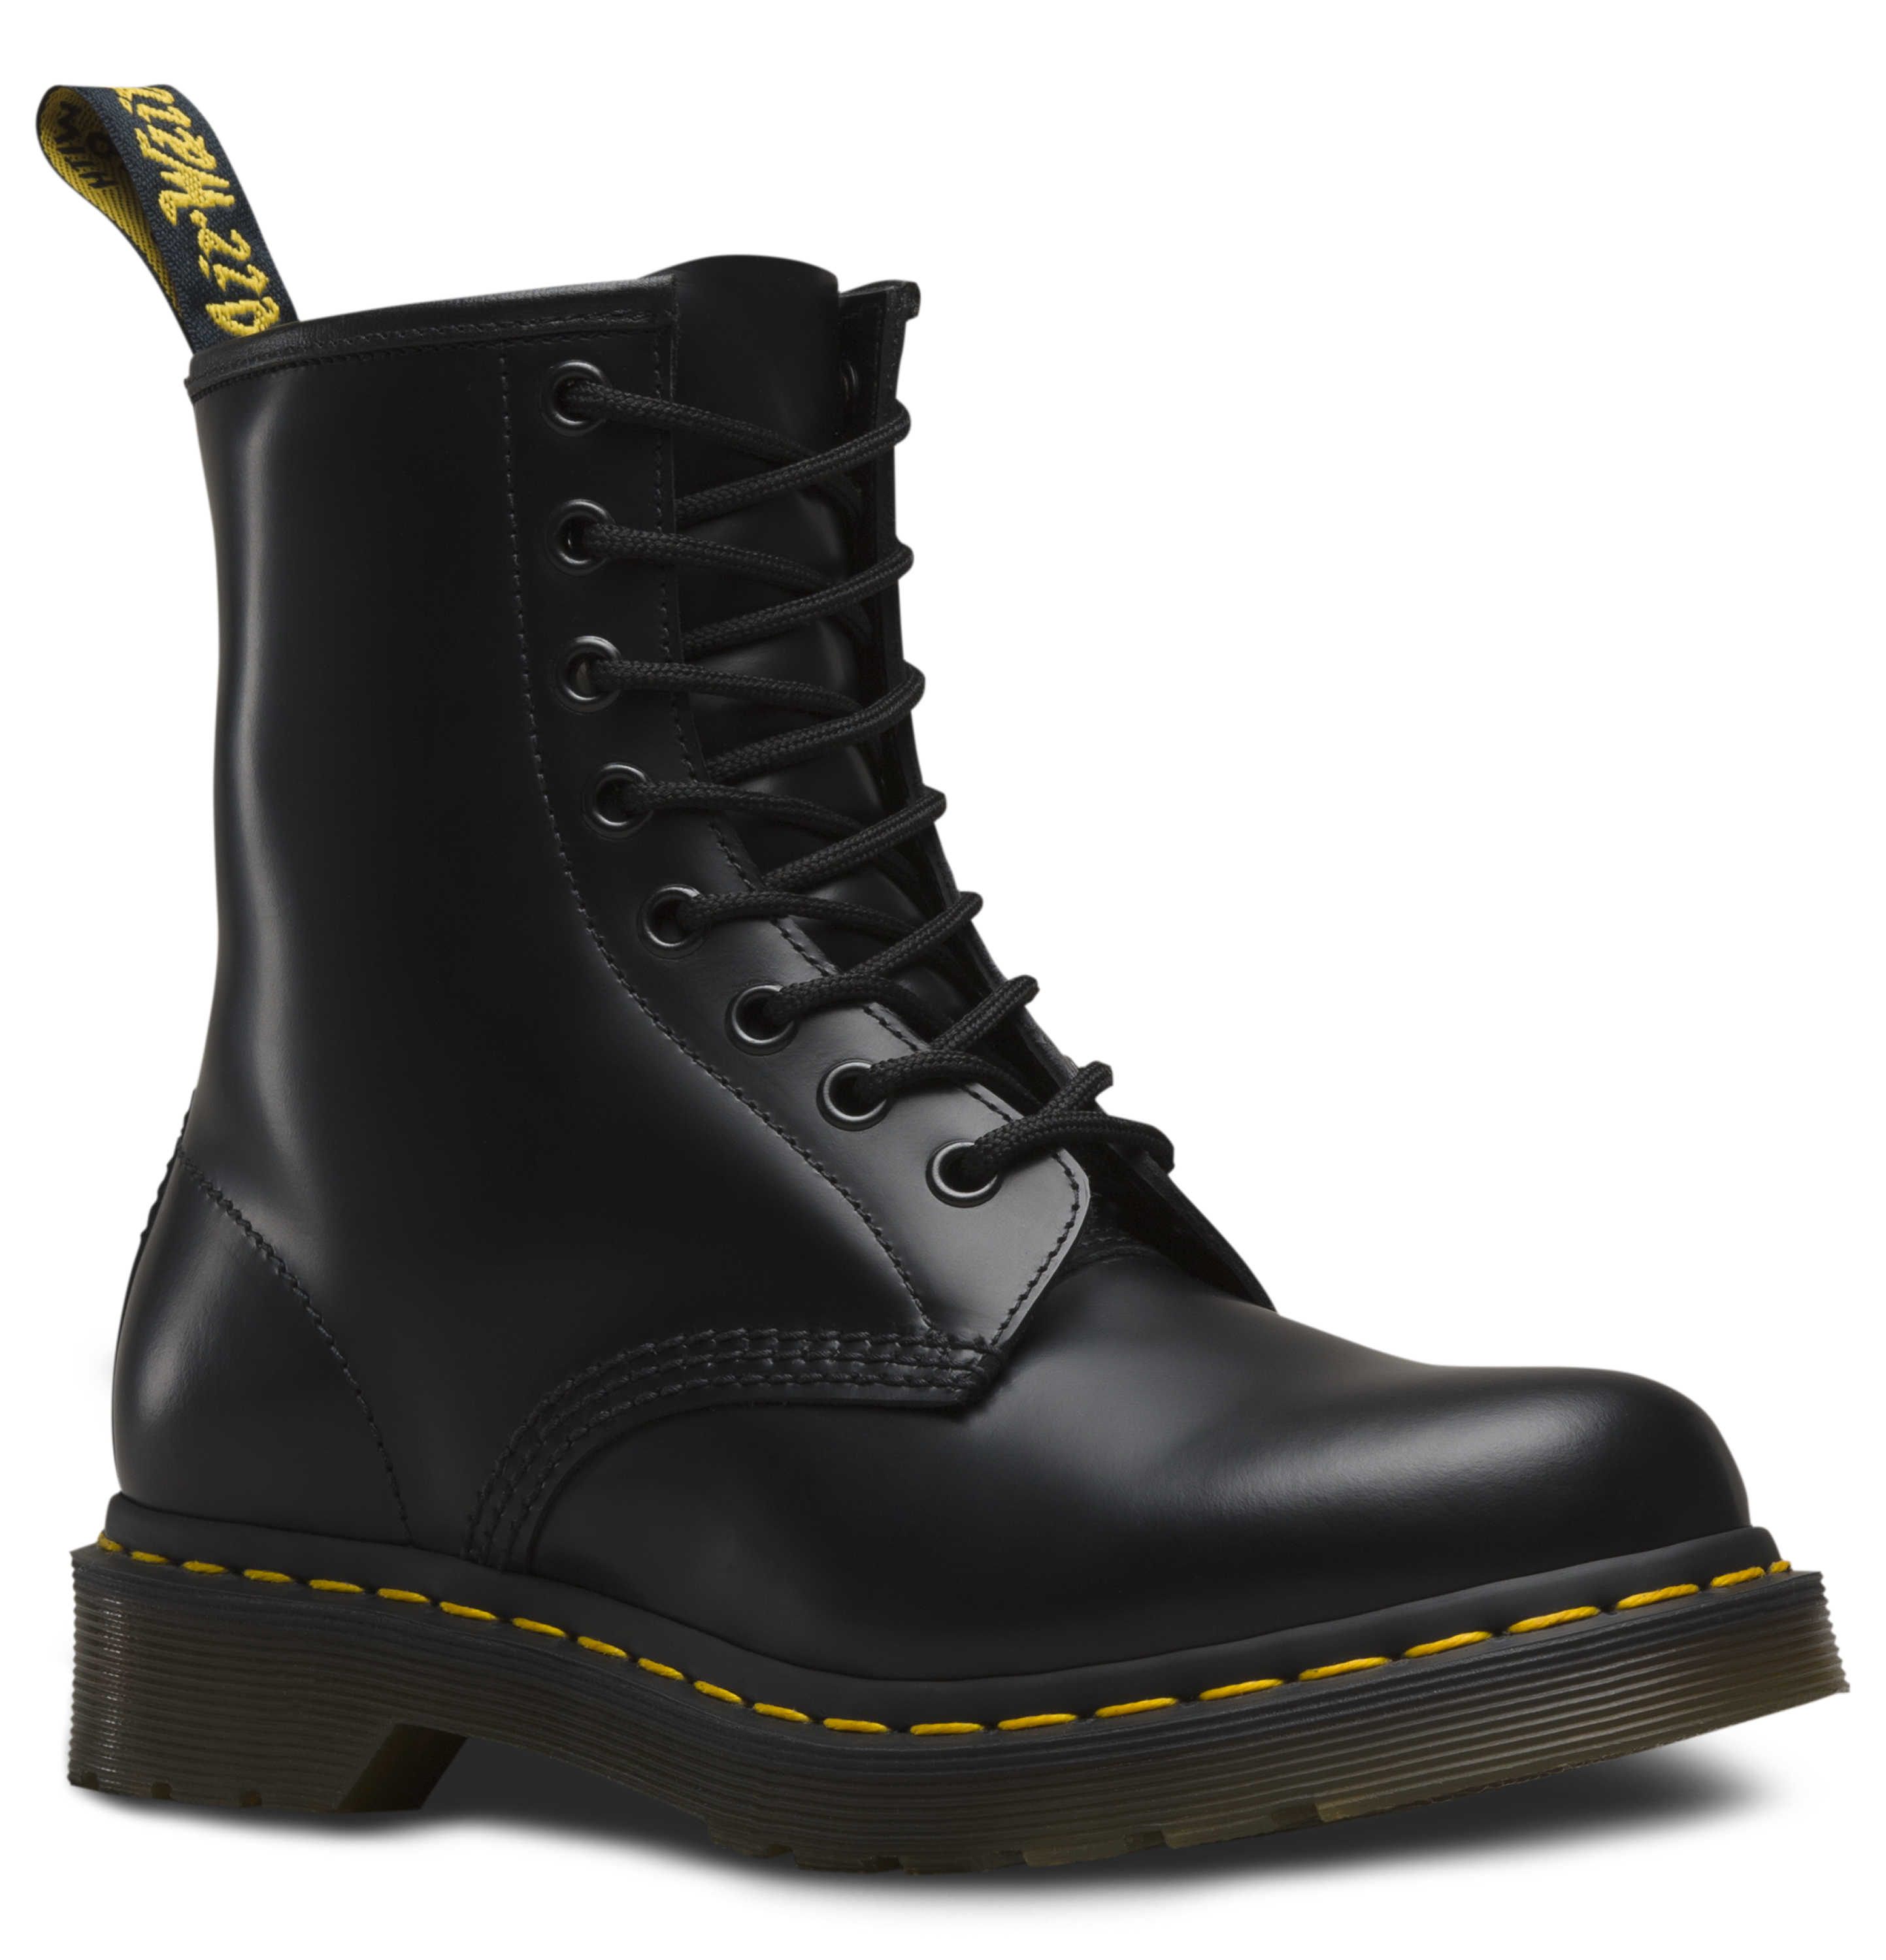 women 39 s 1460 women 39 s boots official dr martens store us. Black Bedroom Furniture Sets. Home Design Ideas